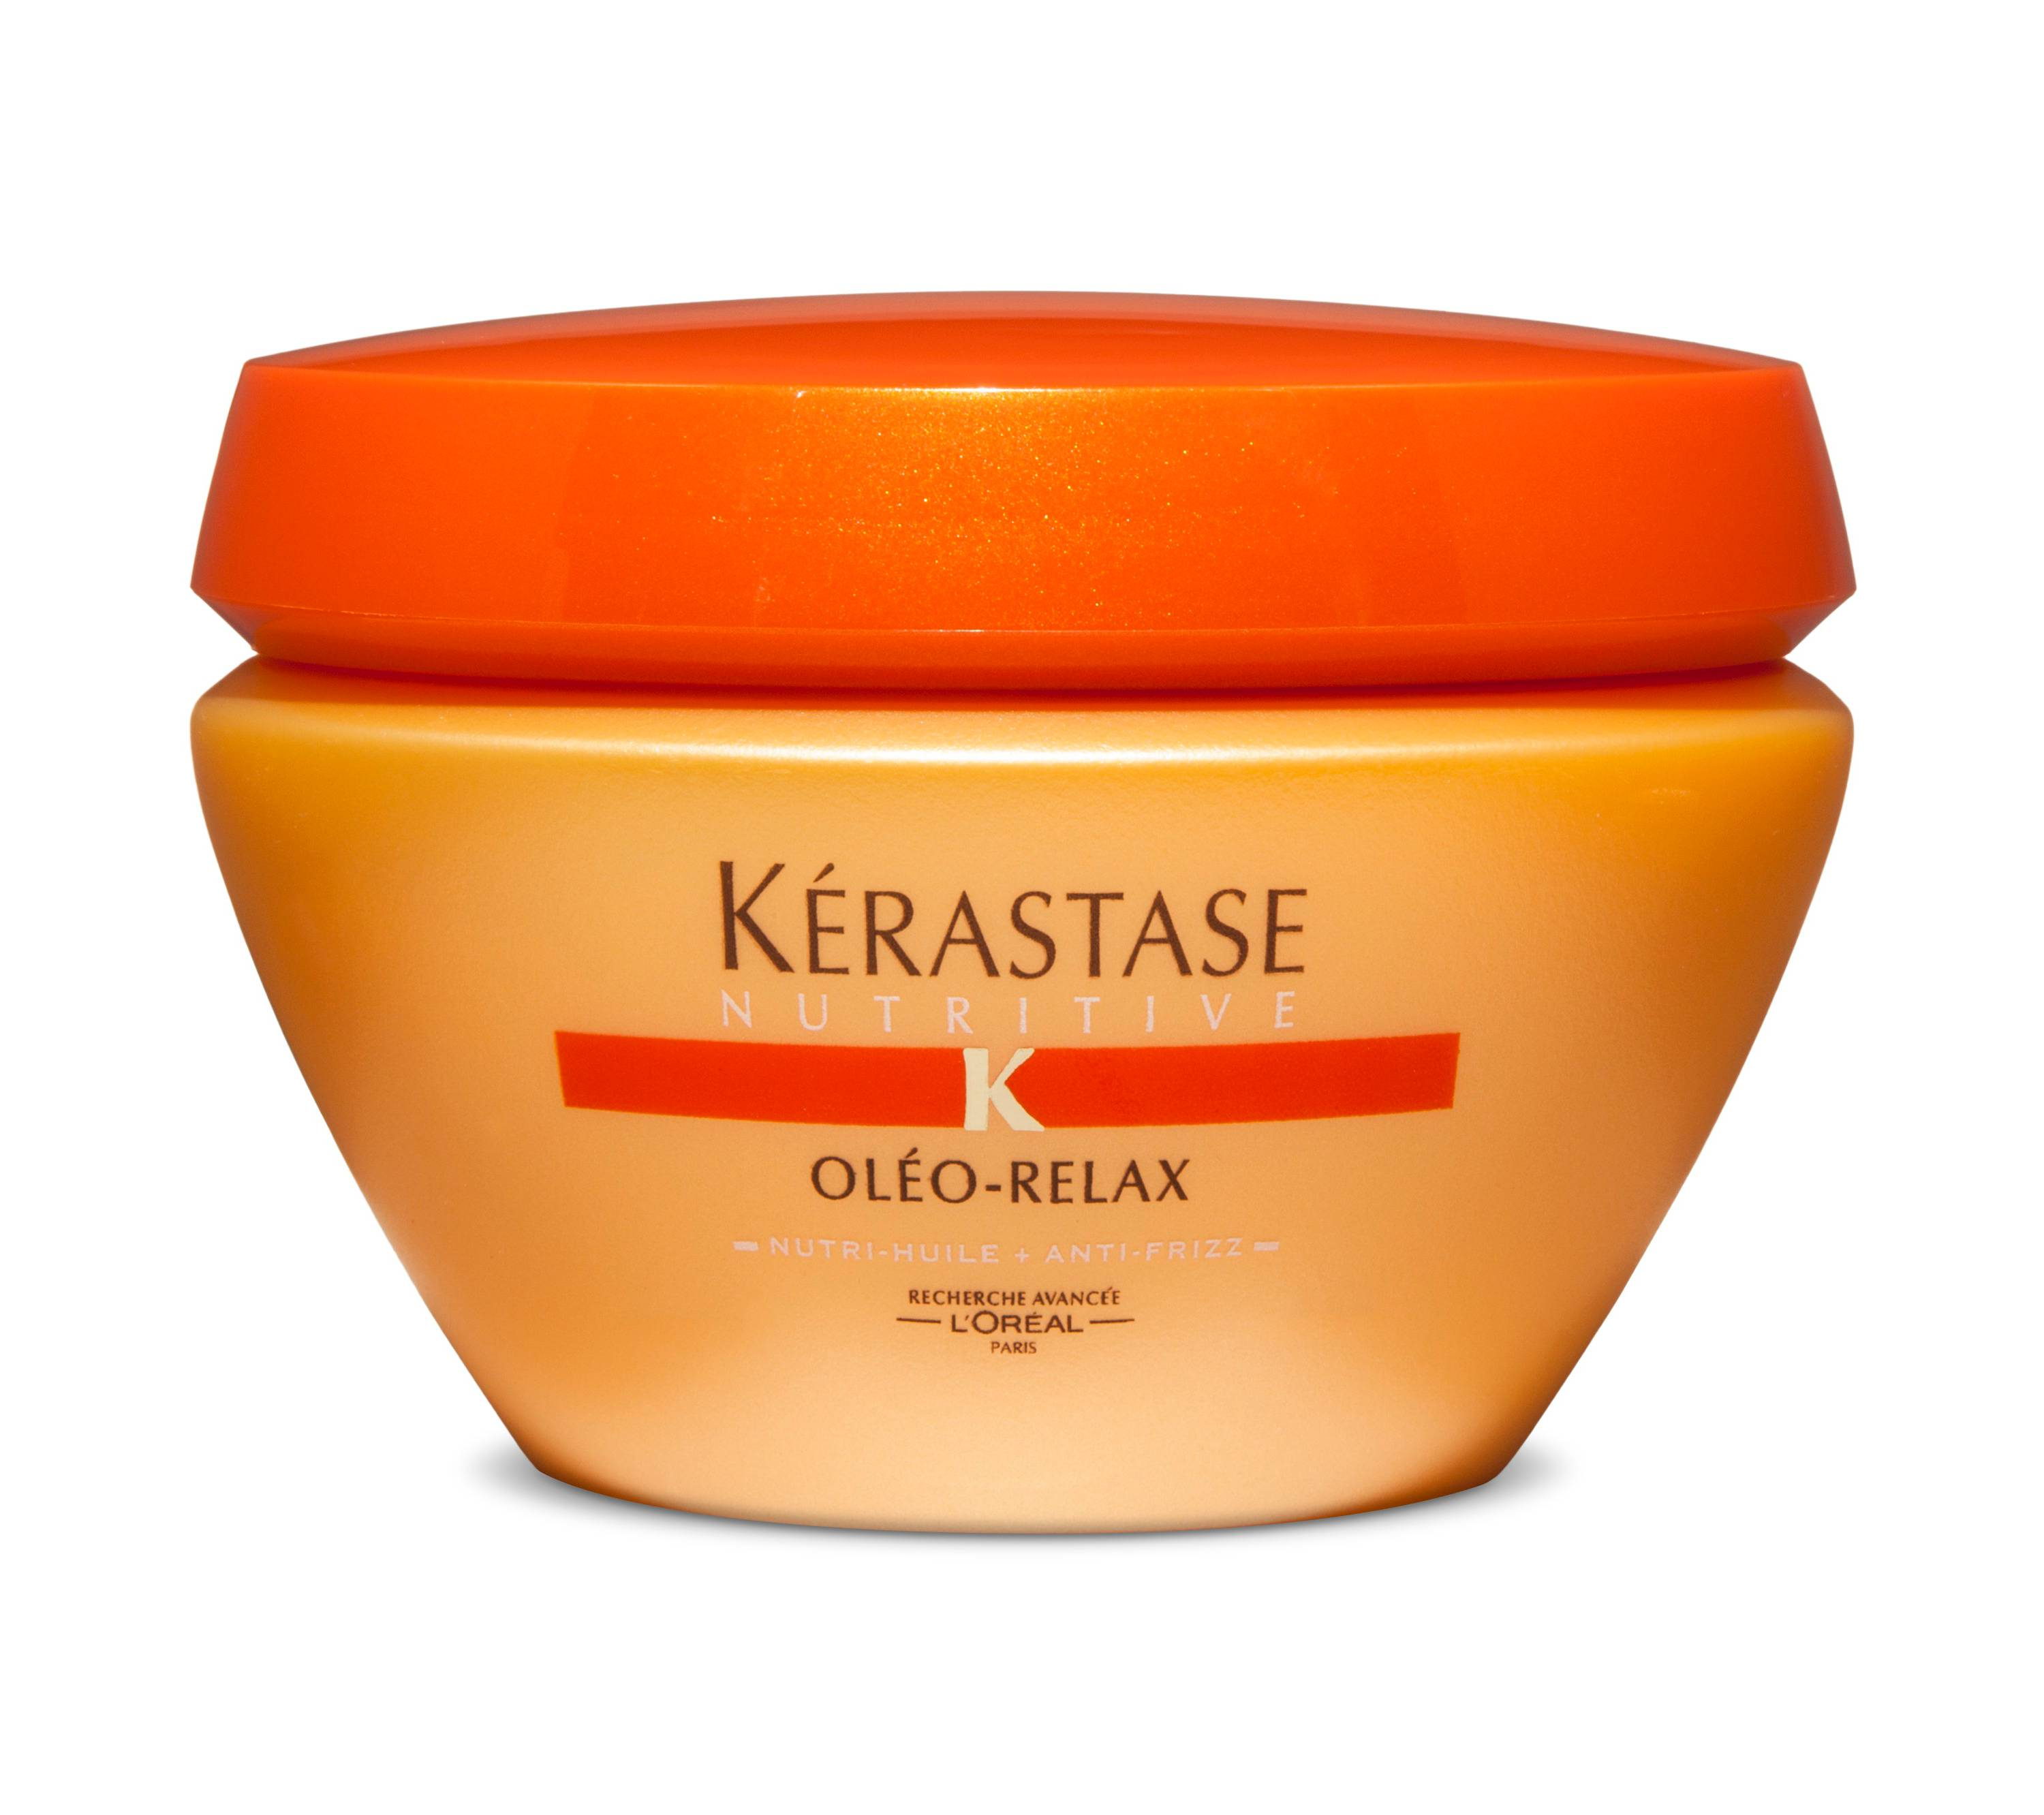 Kérastase Nutritive Oleo-Relax Hair Conditioning Treatment